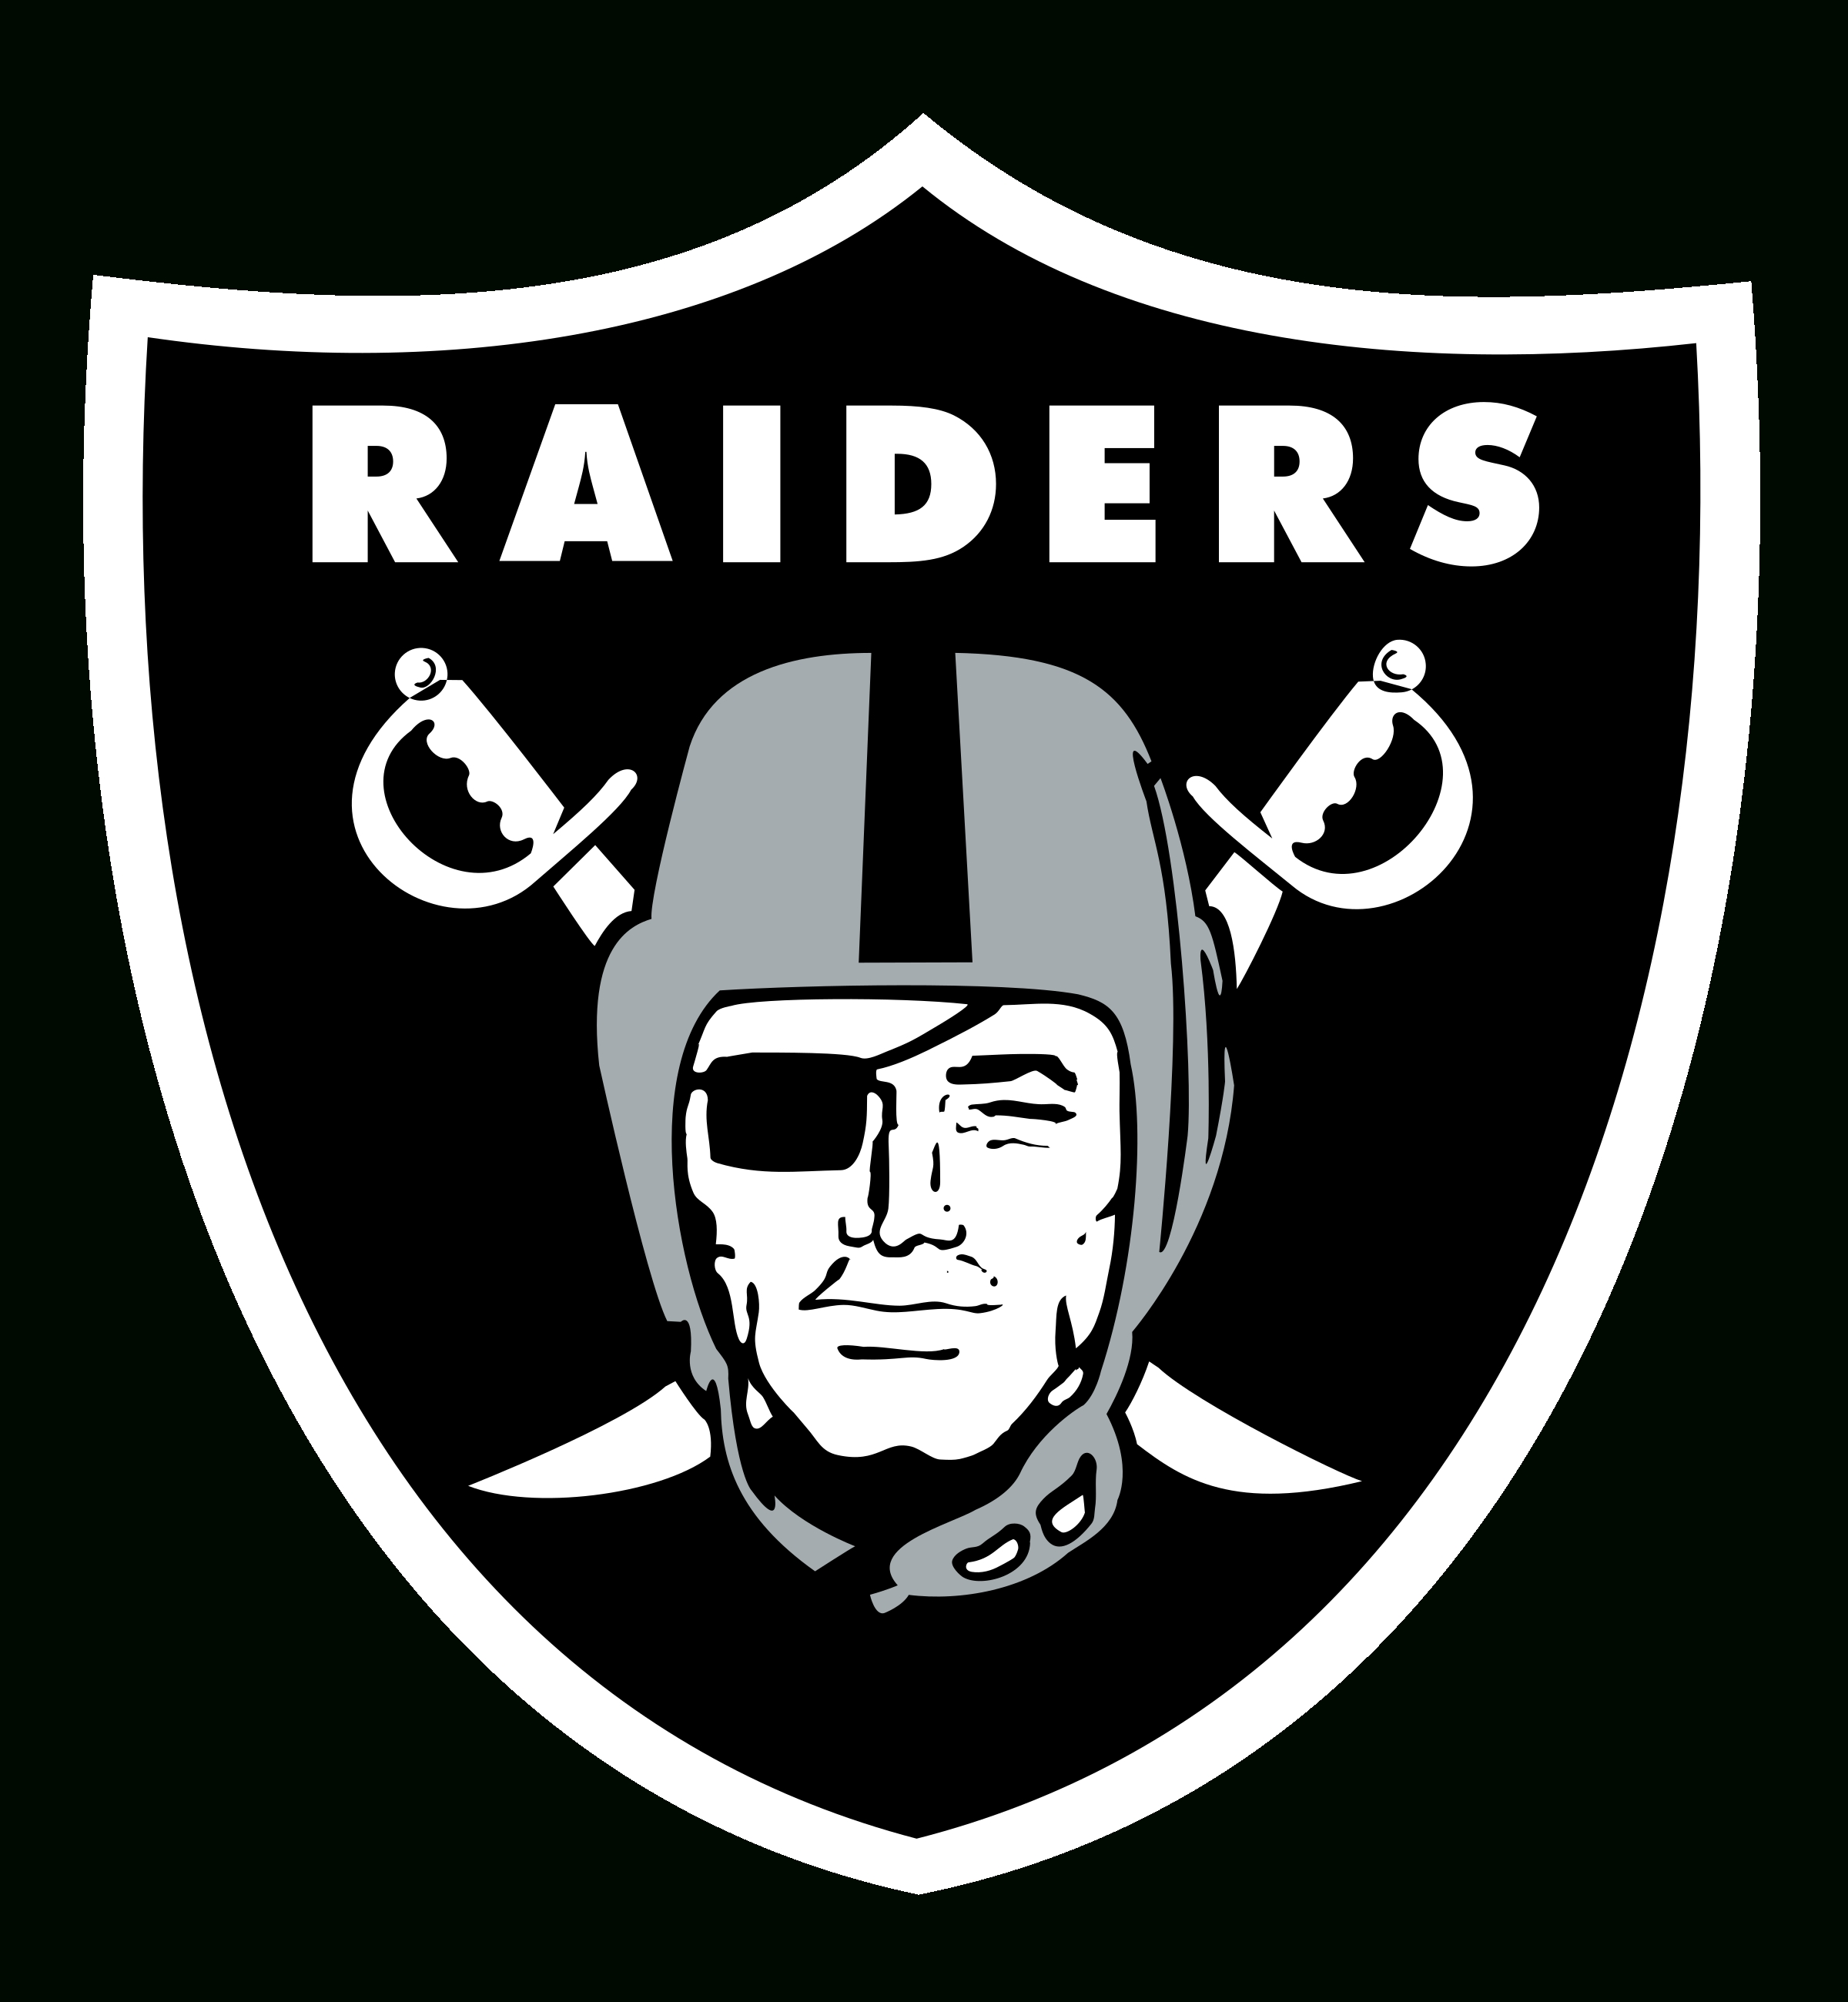 oakland raiders logo png transparent & svg vector - freebie supply